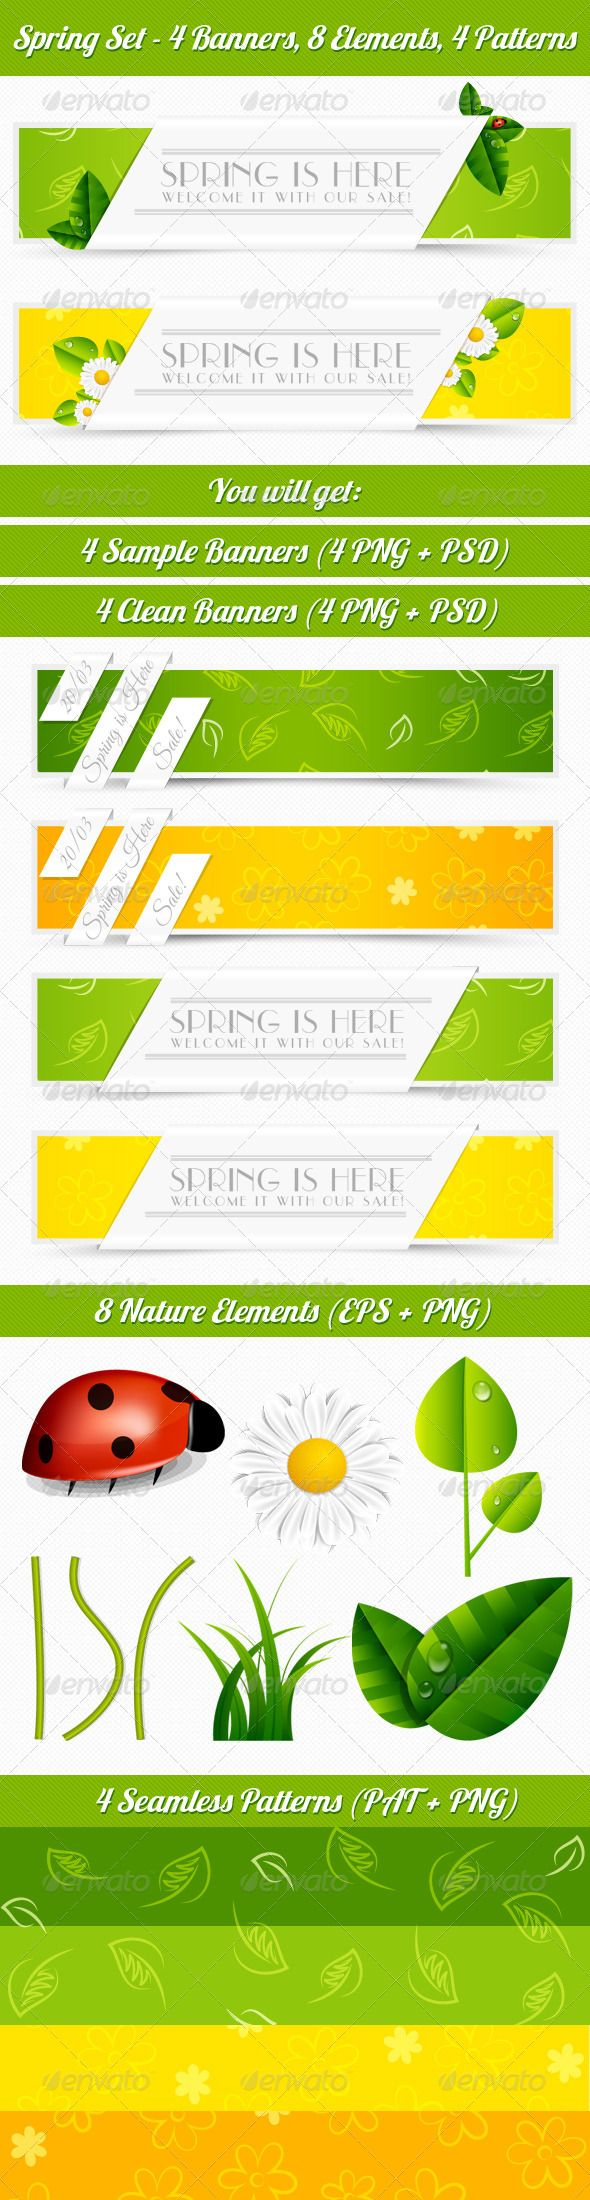 Spring Web Banner Set Template PSD | Buy and Download: http://graphicriver.net/item/spring-banner-set/4240338?WT.ac=category_thumb&WT.z_author=Veritycz&ref=ksioks